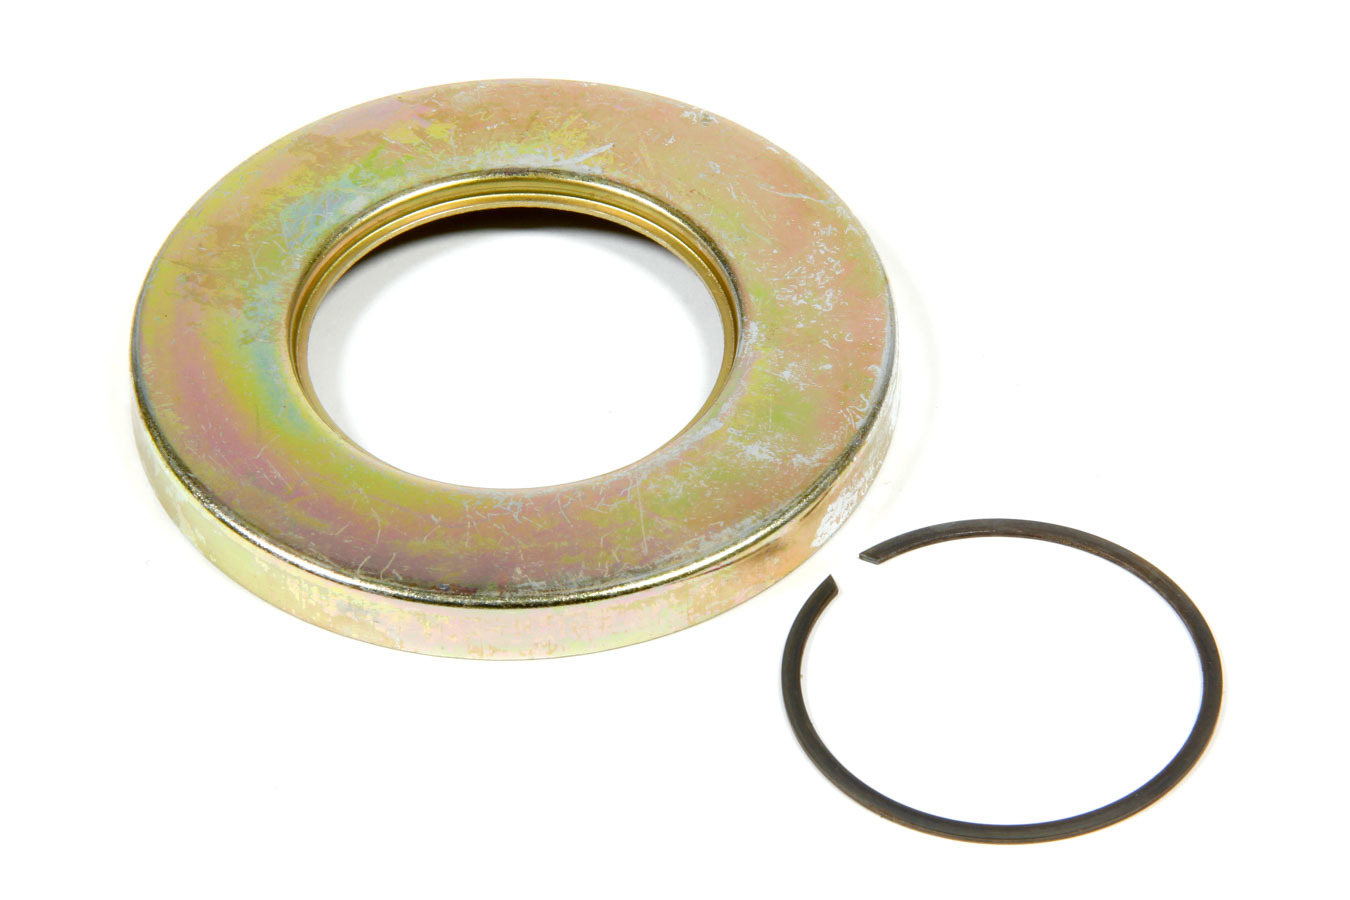 Tsr Racing Products P/G HD Reverse Spring Retainer